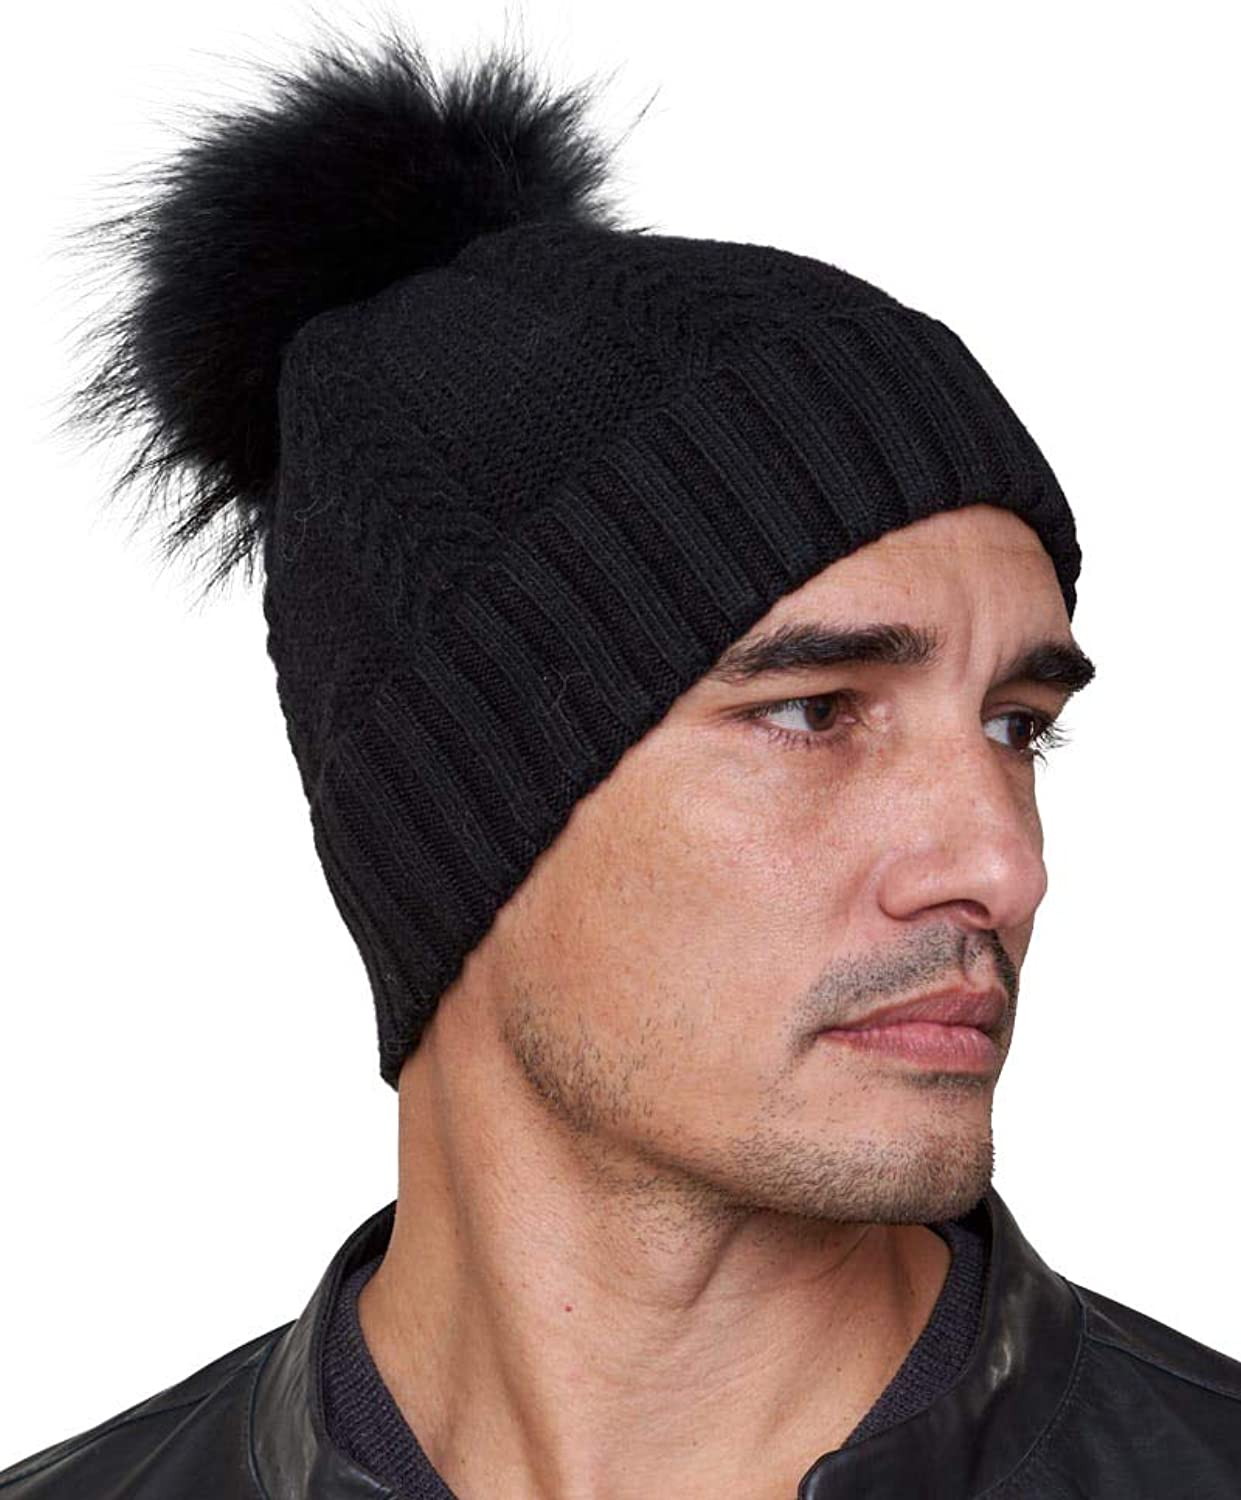 Frr Tristan Black Knit Beanie Hat with Raccoon Fur